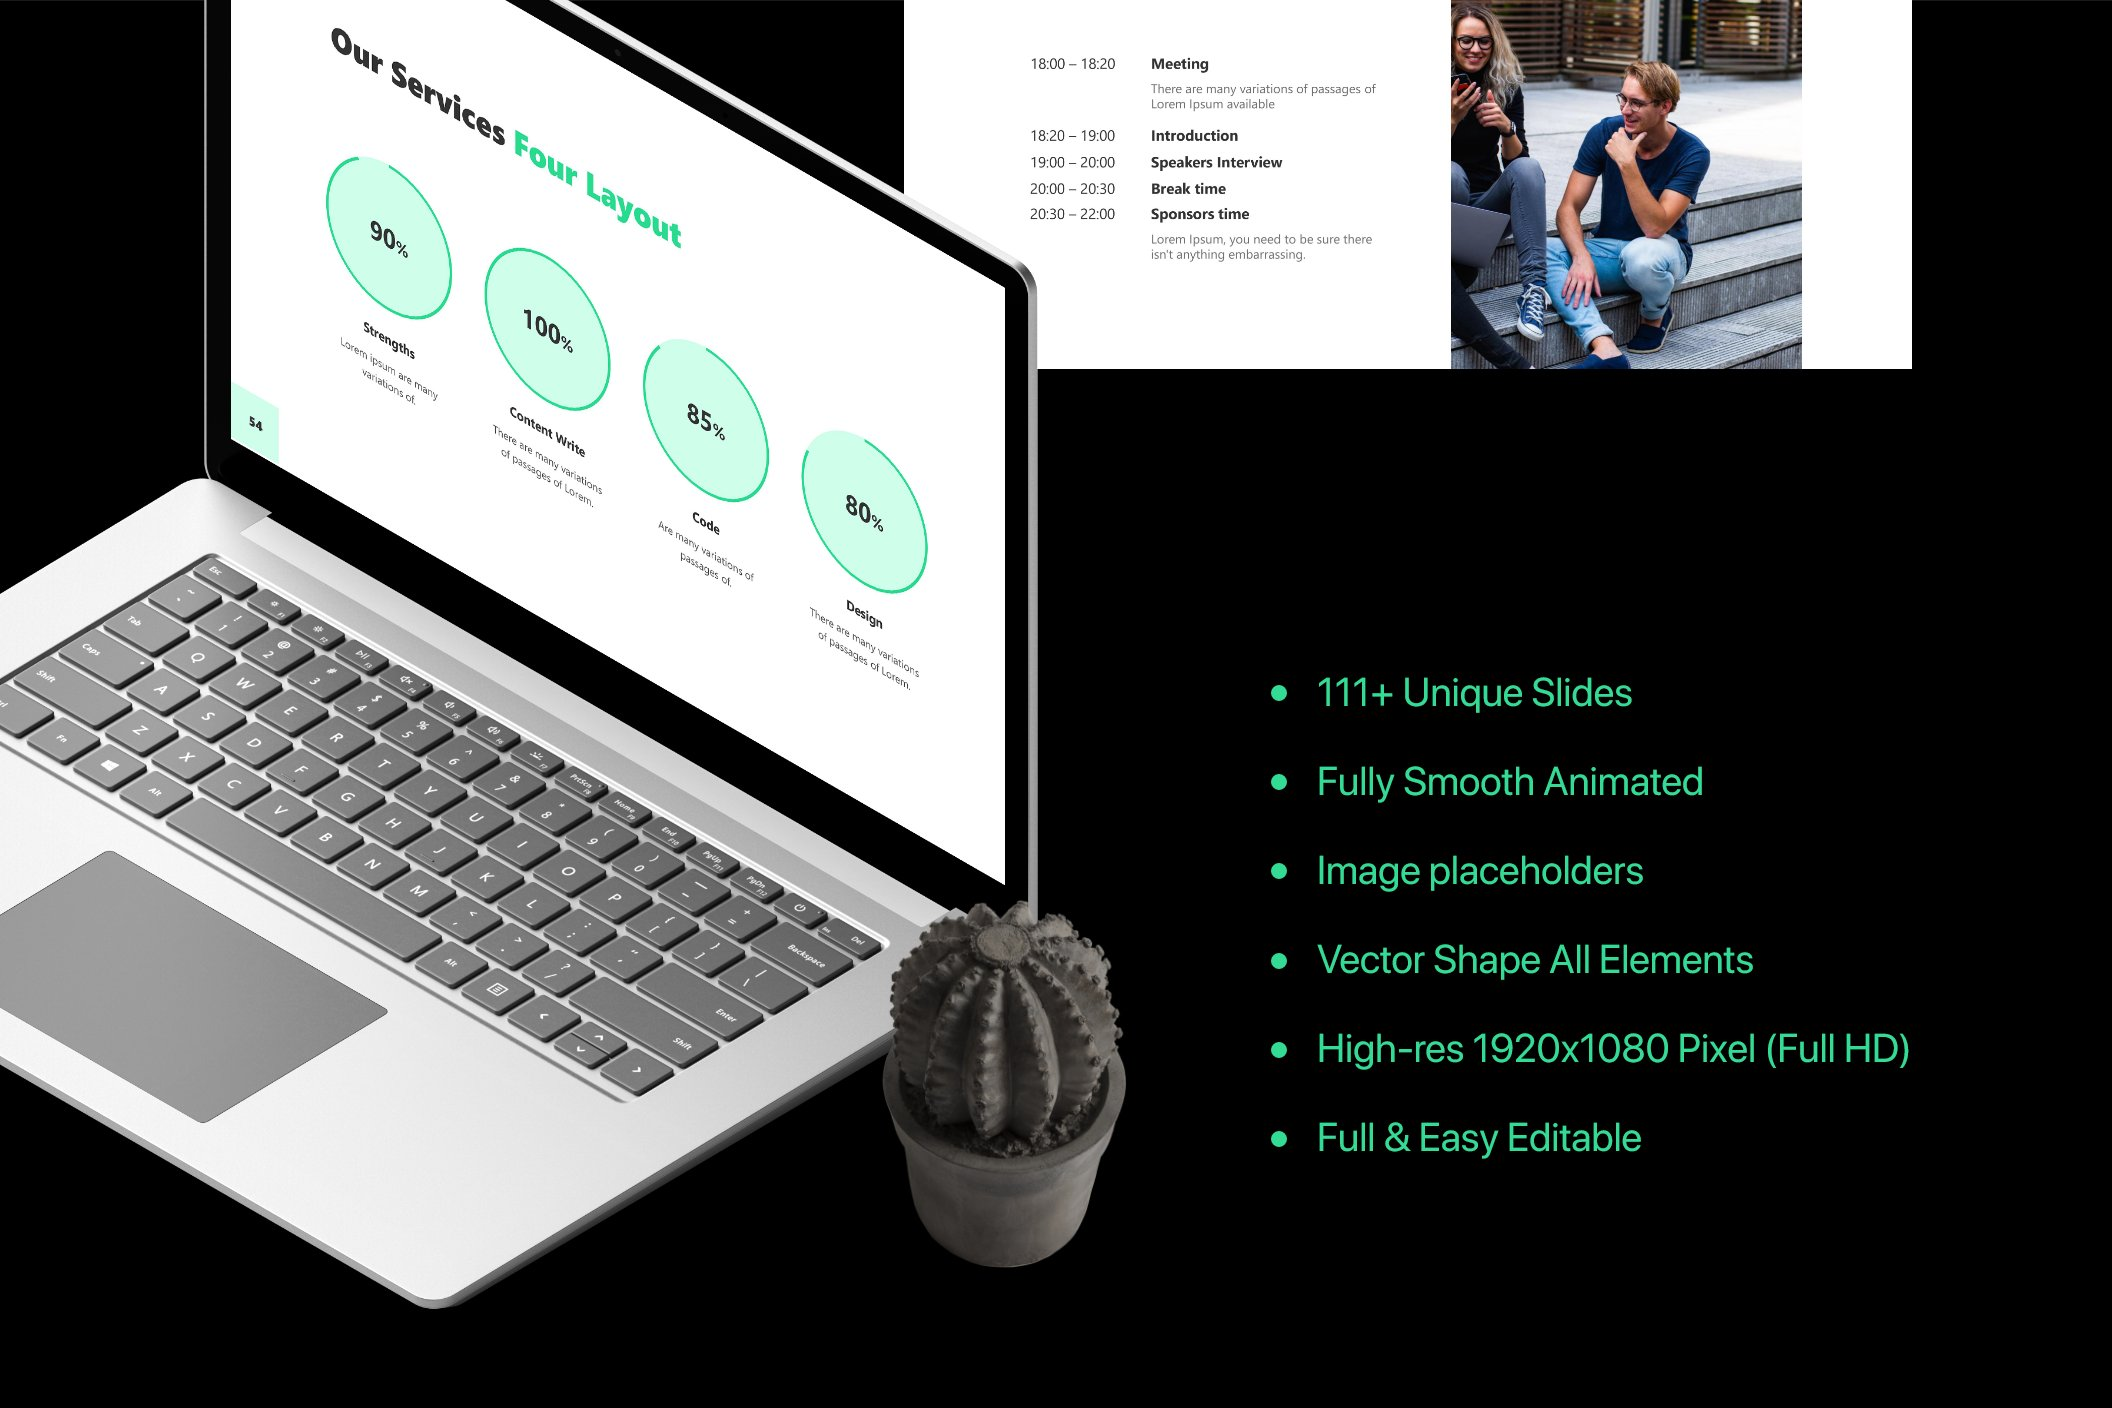 Black background and green accents - highlight, font, infographics.